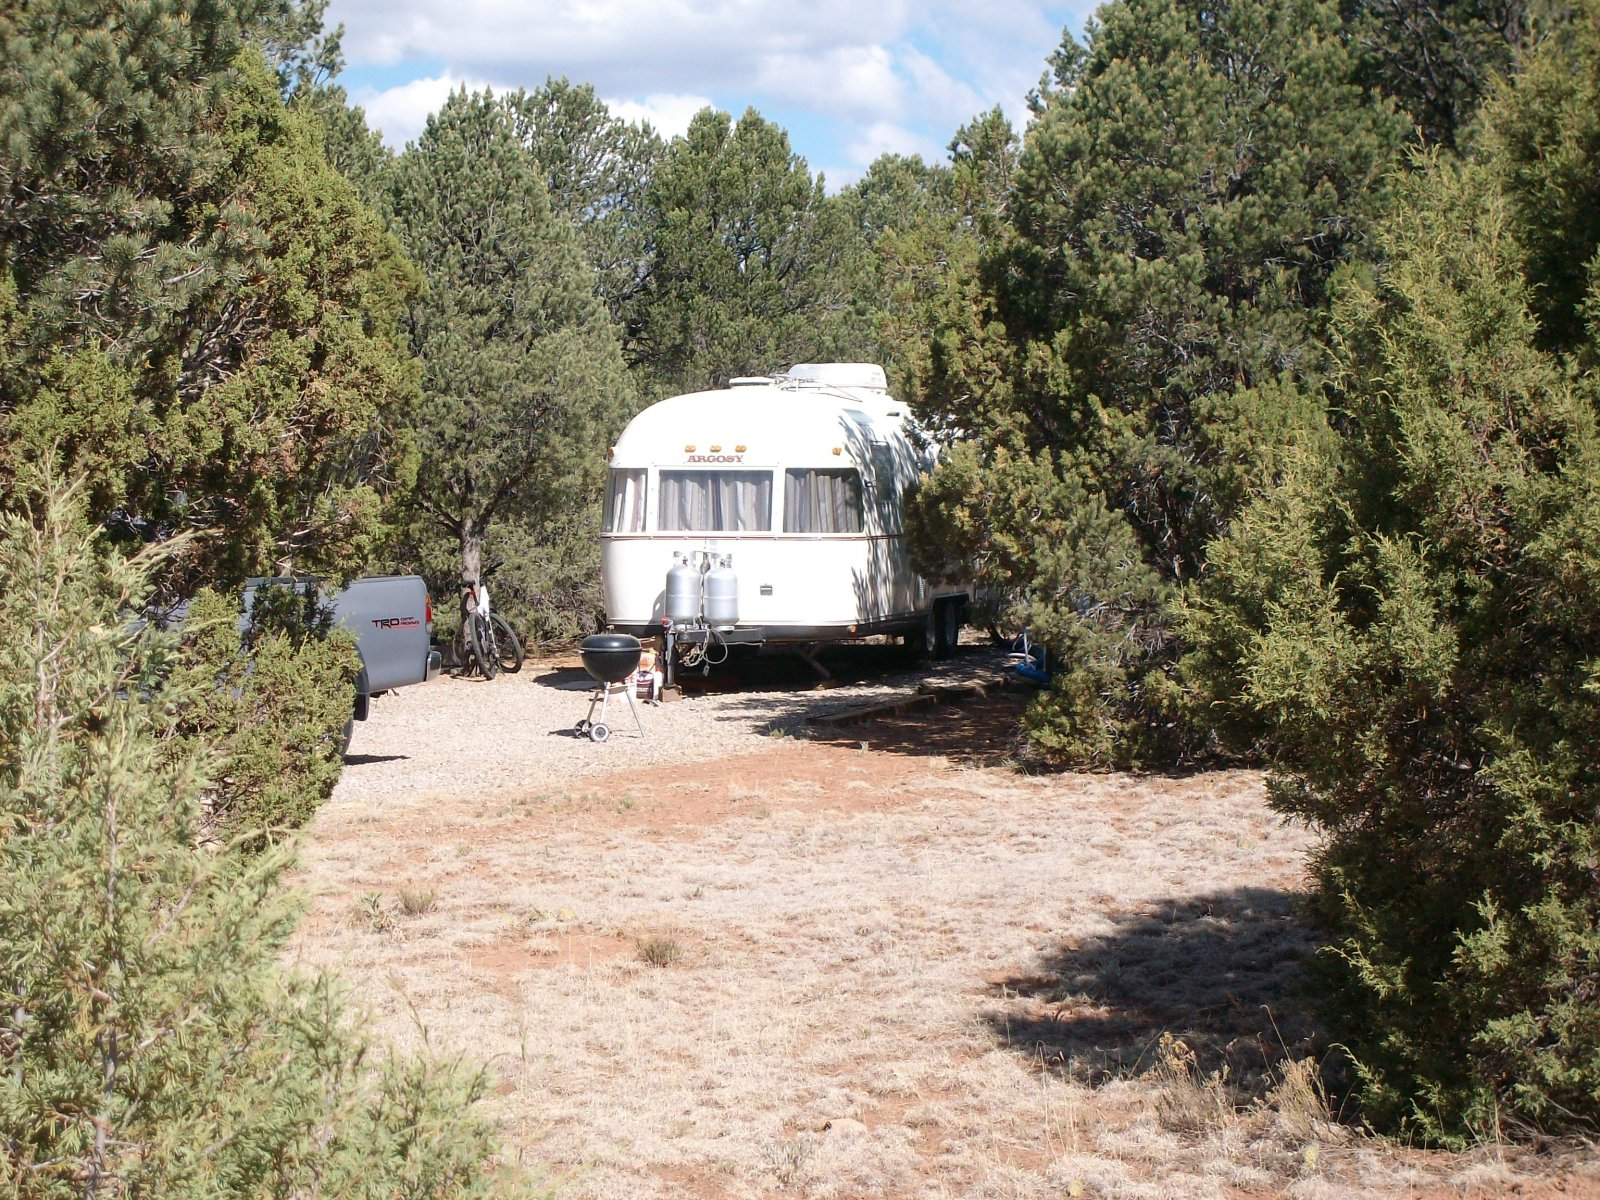 Click image for larger version  Name:Campsite4.jpg Views:94 Size:665.7 KB ID:134326